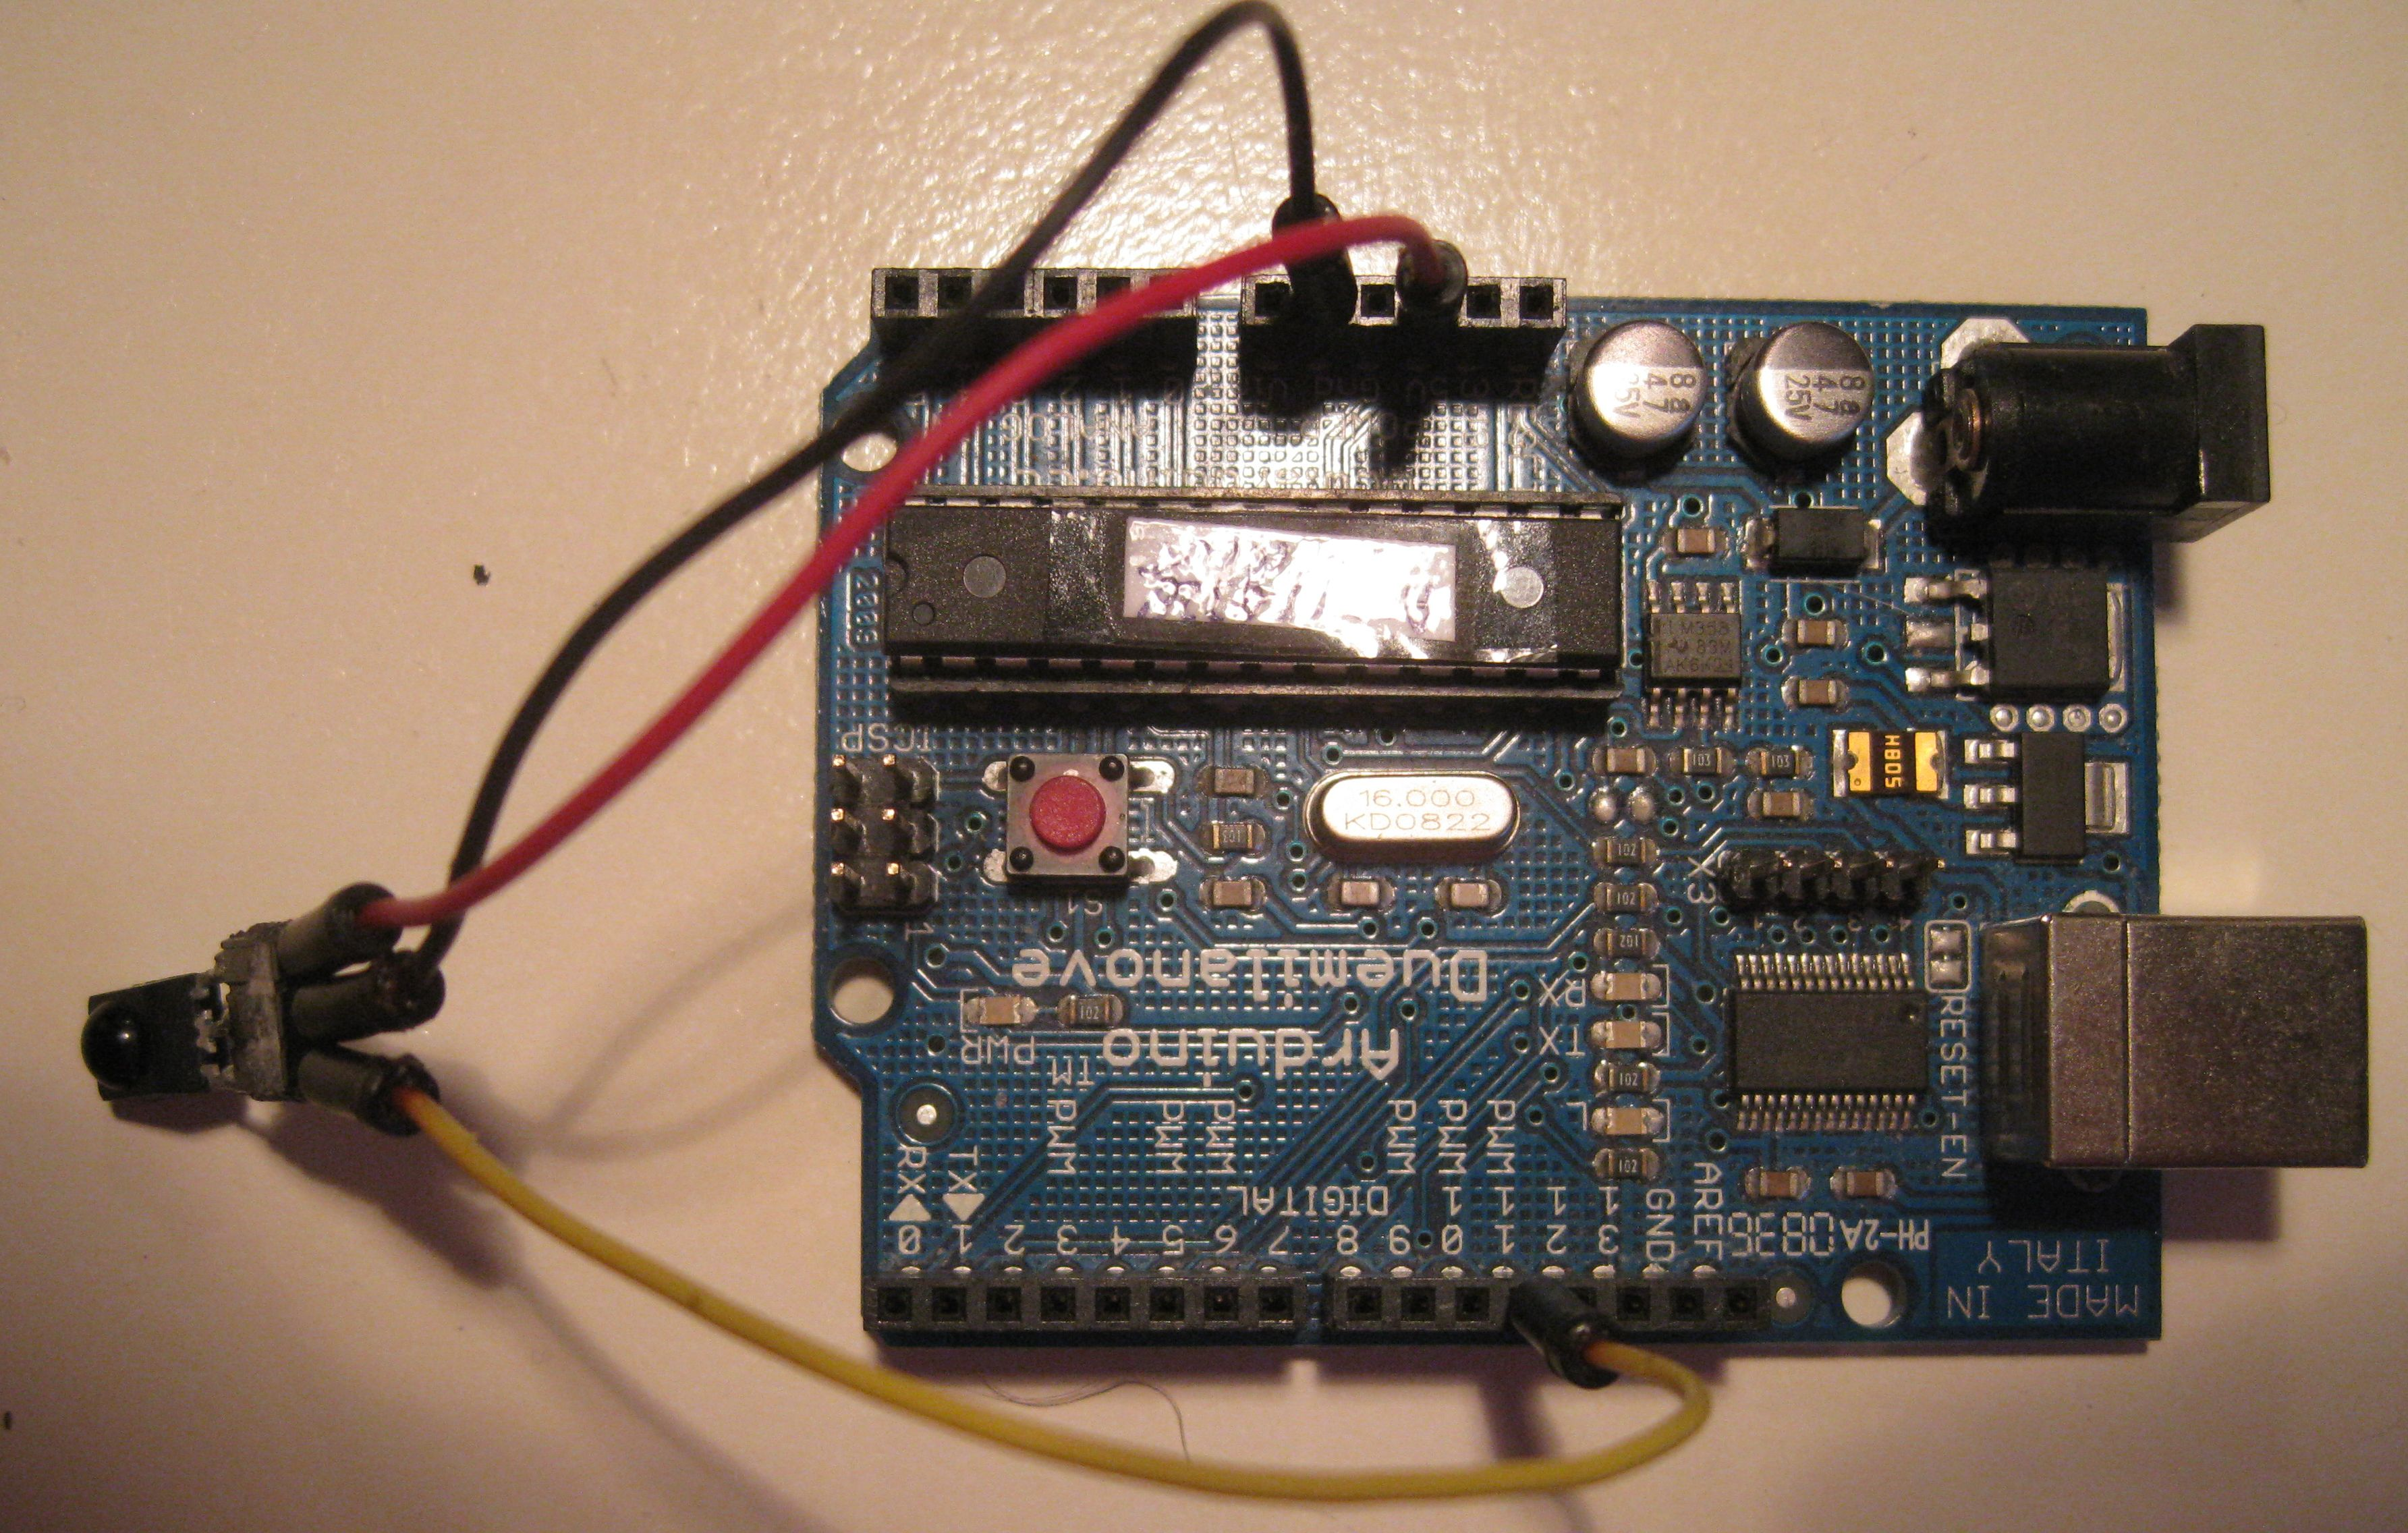 The Tsop1838 Is An Ir Receiver Modules For Remote Control Systems Planet Arduino Tsop1838arduino